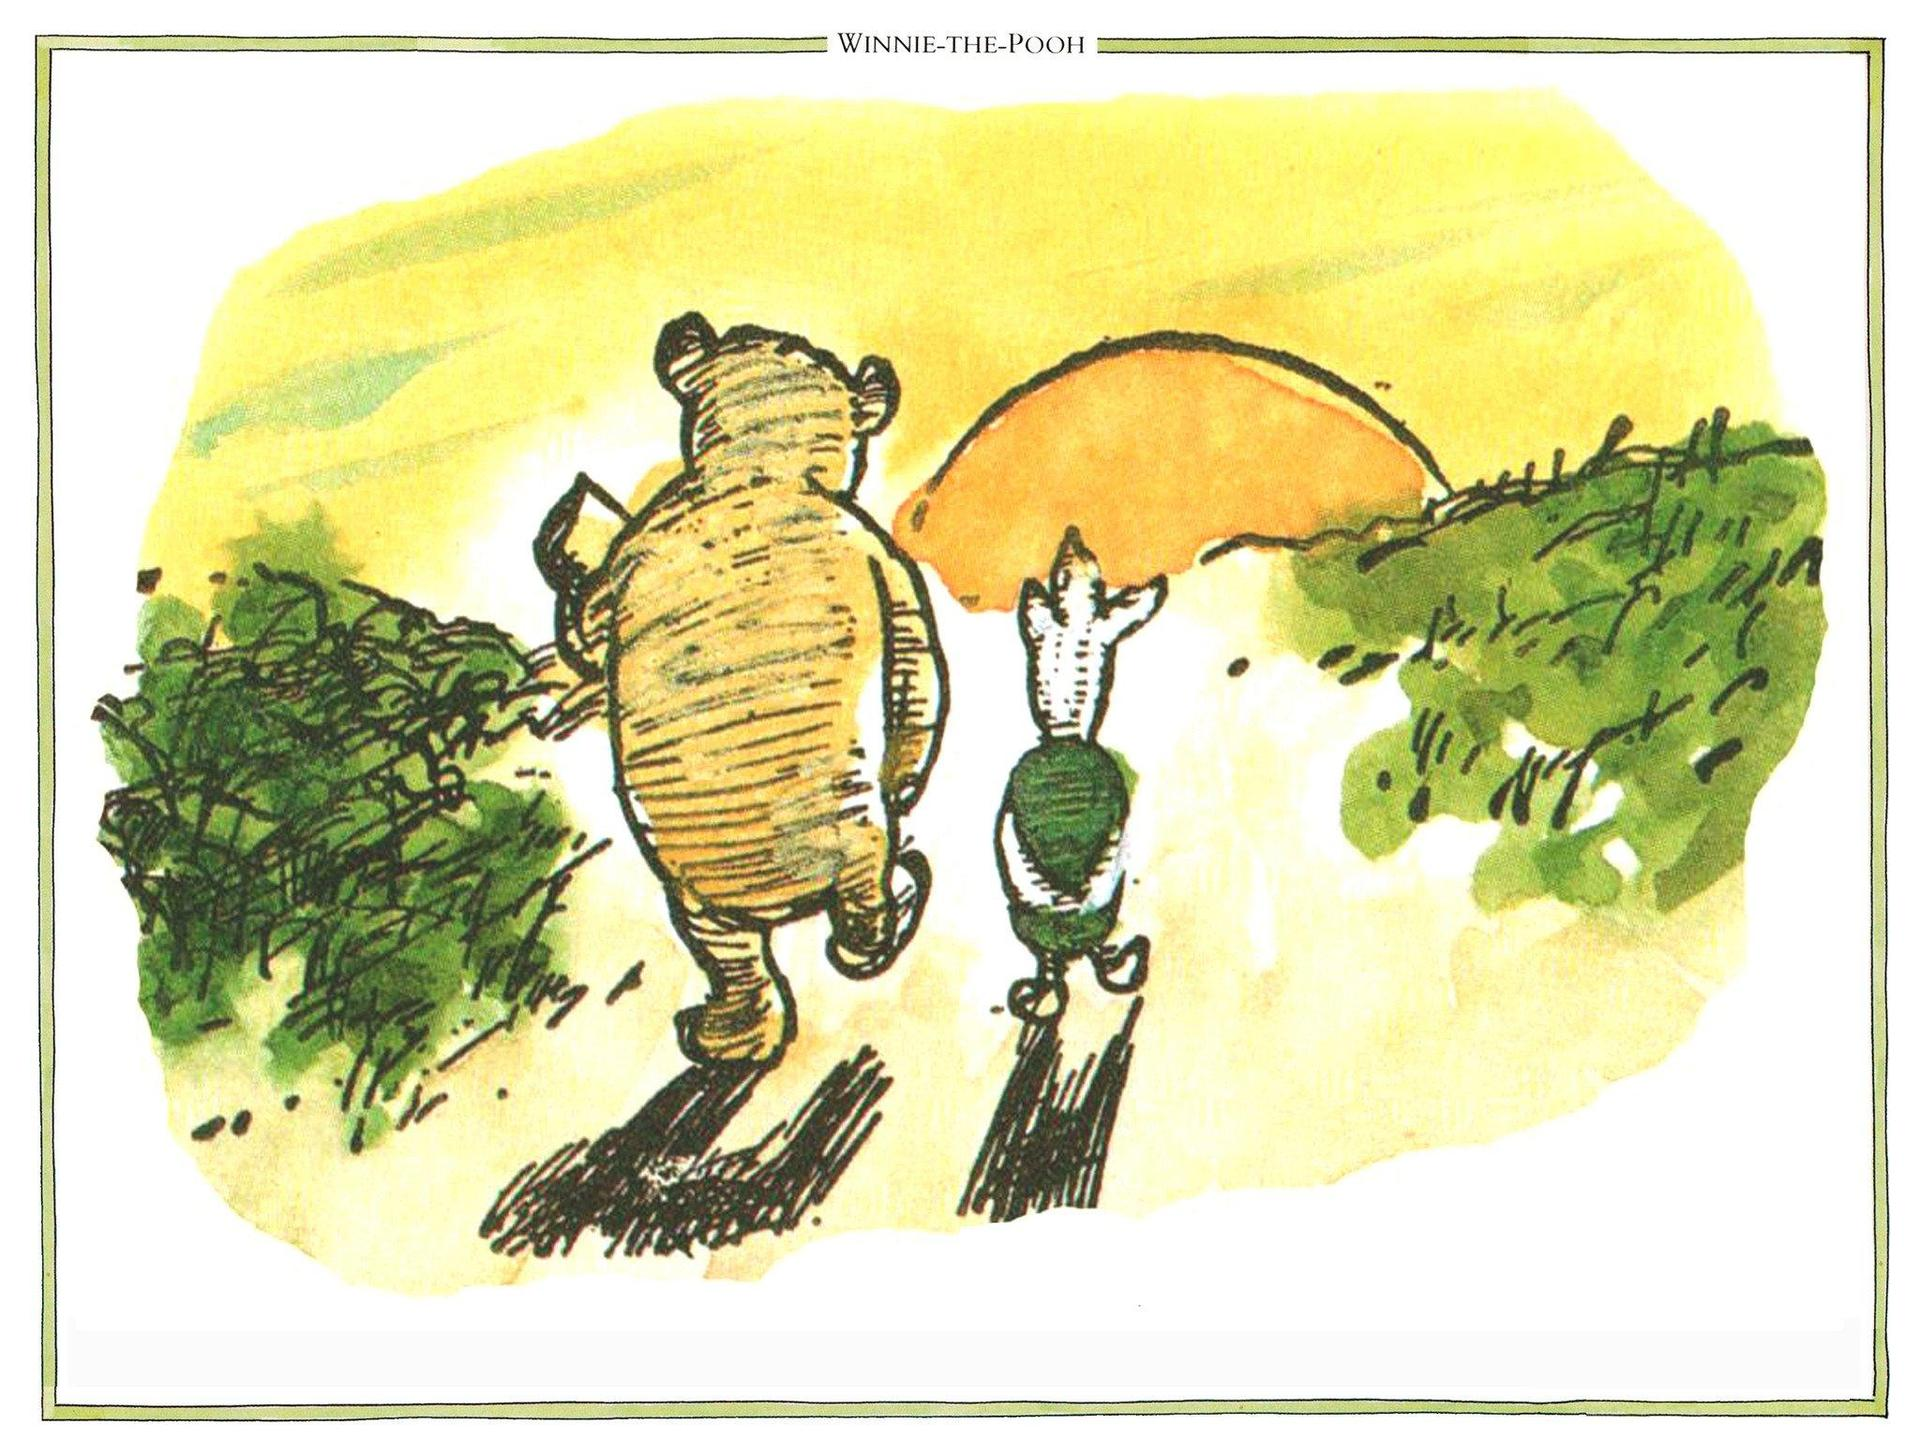 Pooh and Piglet walking into the sunset